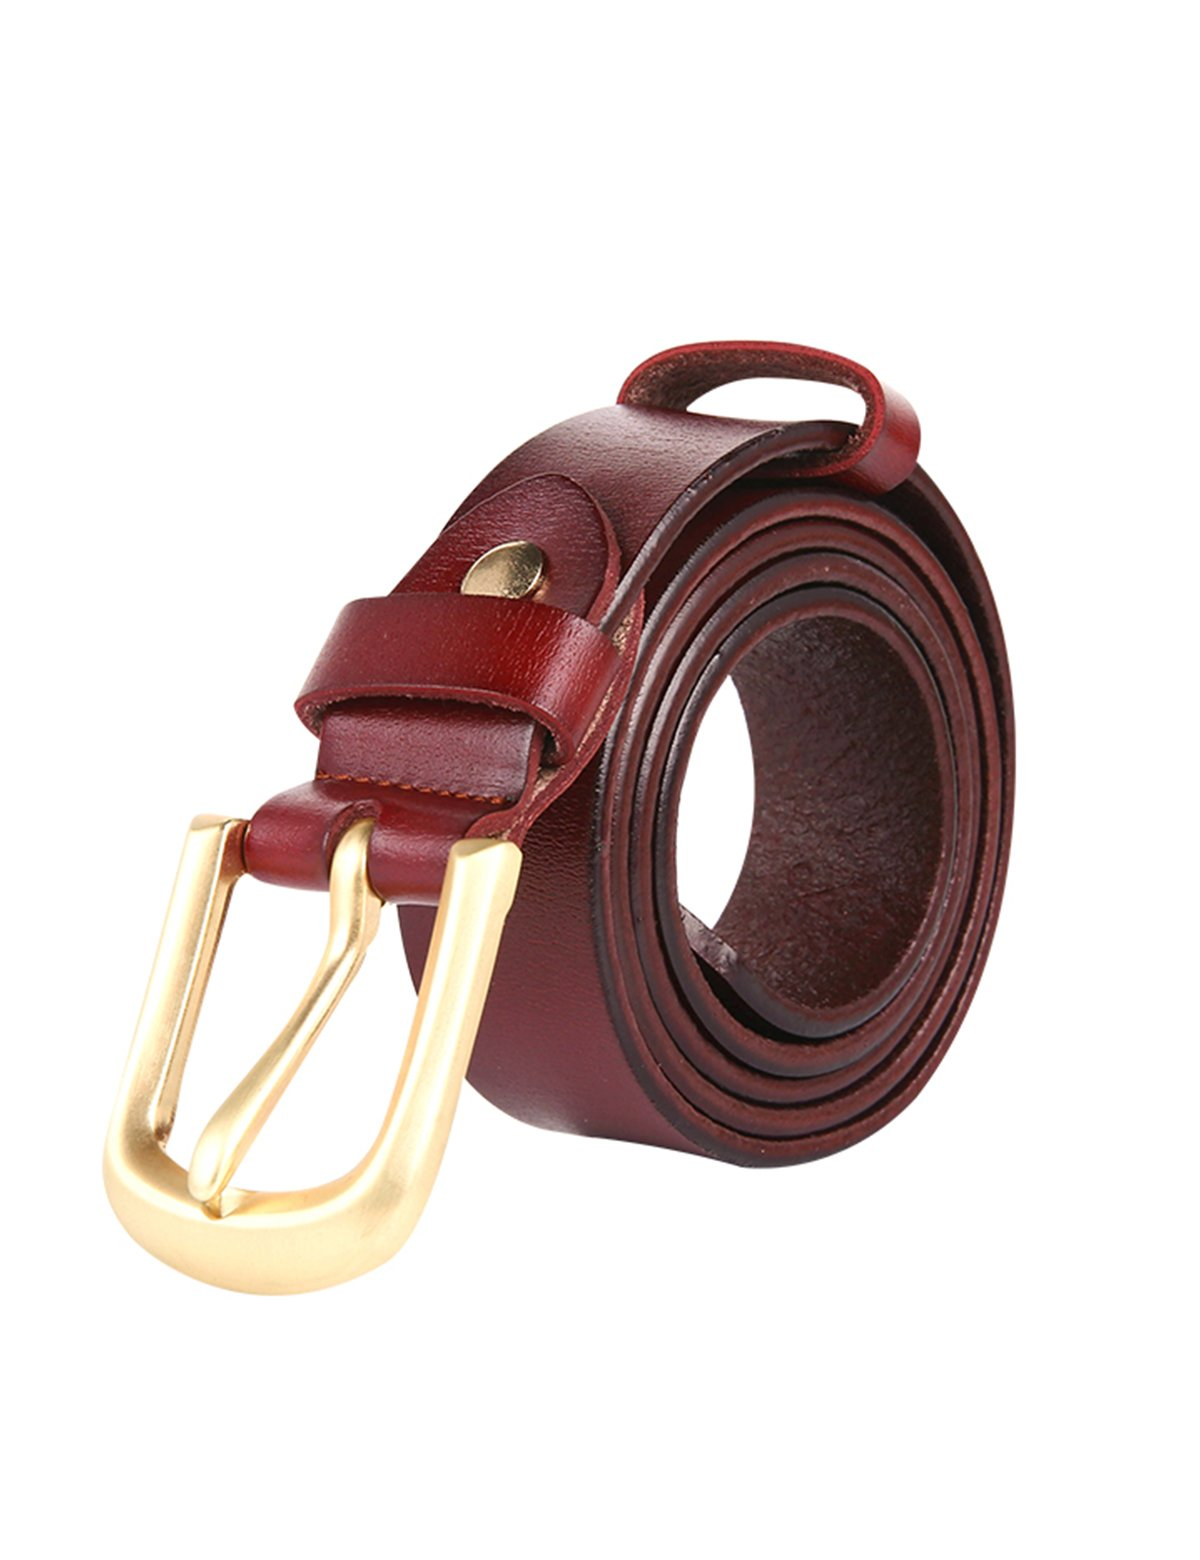 ELPA Children's Belt Casual Fashion Leather Pin Buckle Belt